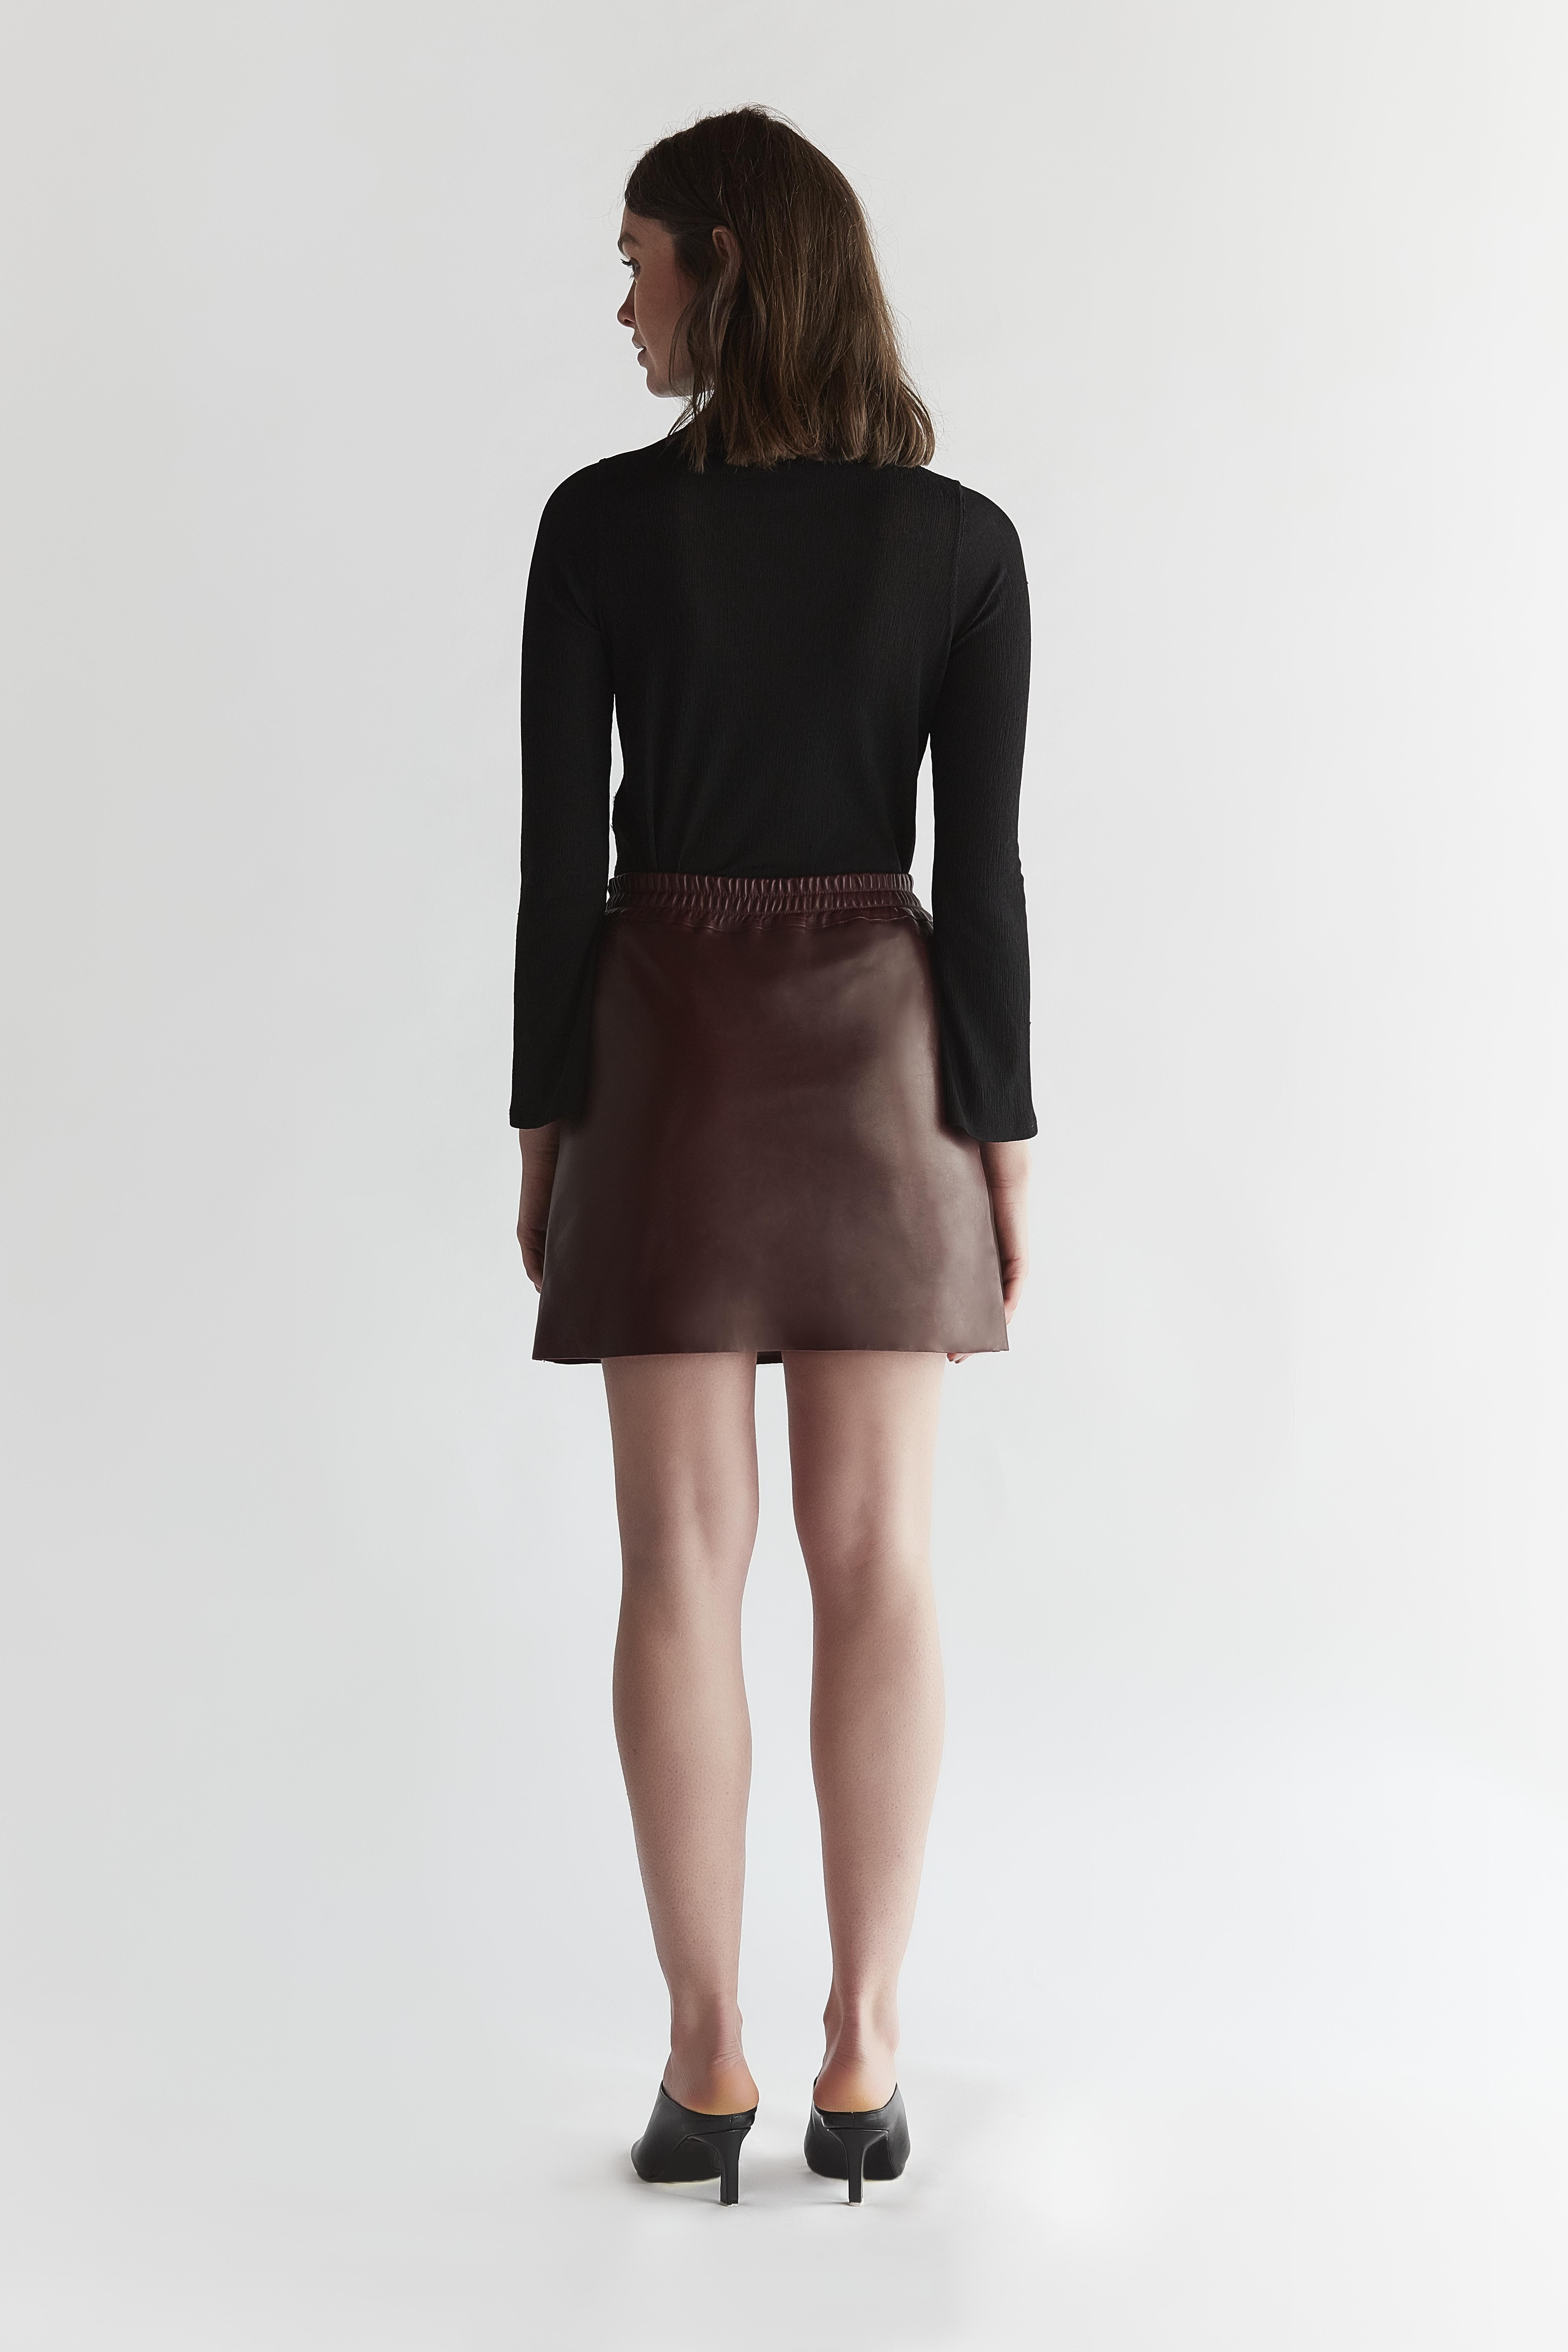 Short Leather skirt - Burgundy by The Ruf on curated-crowd.com